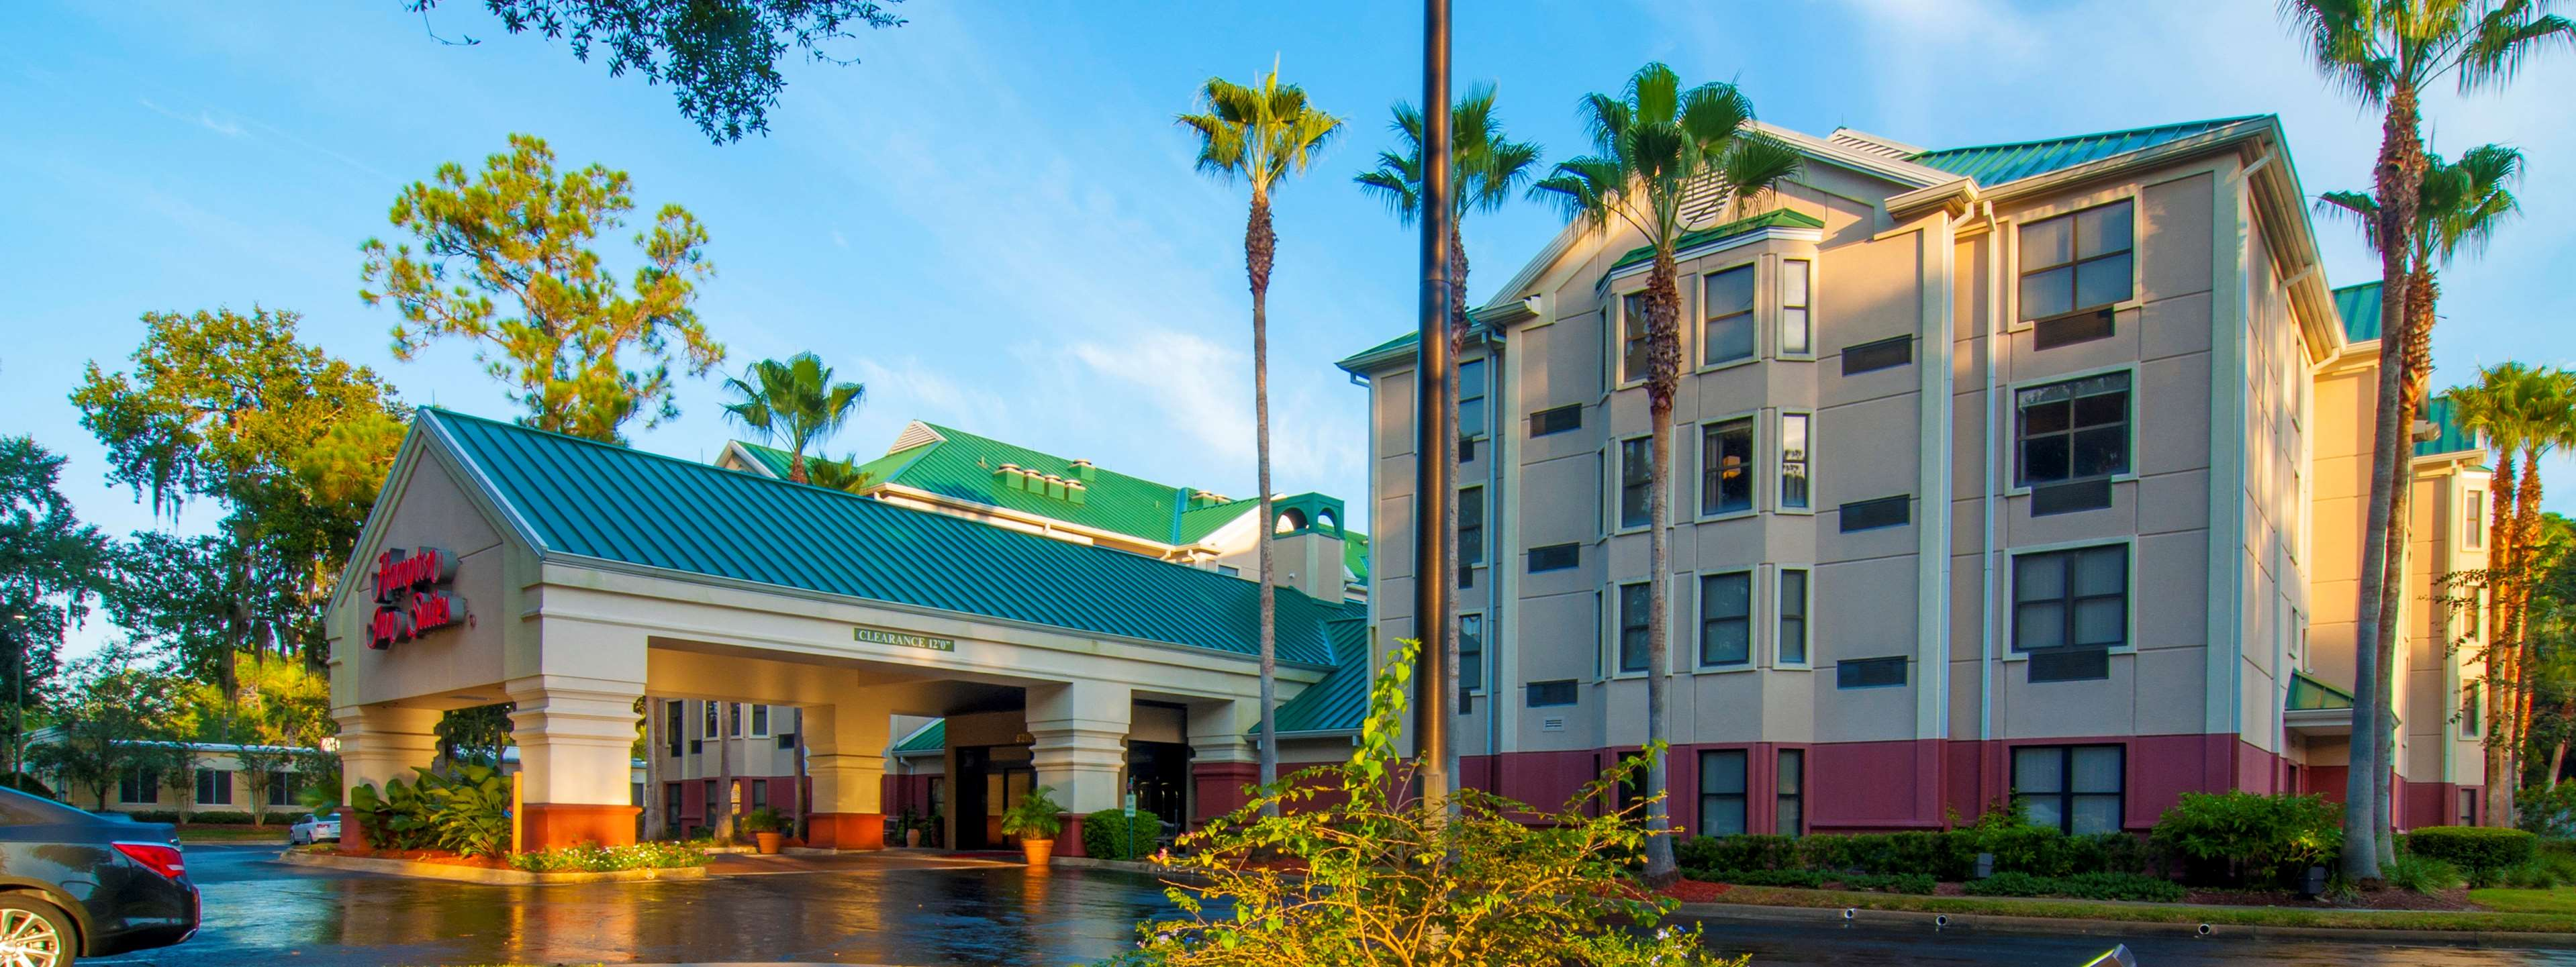 The Top Hotels Motels In Tampa